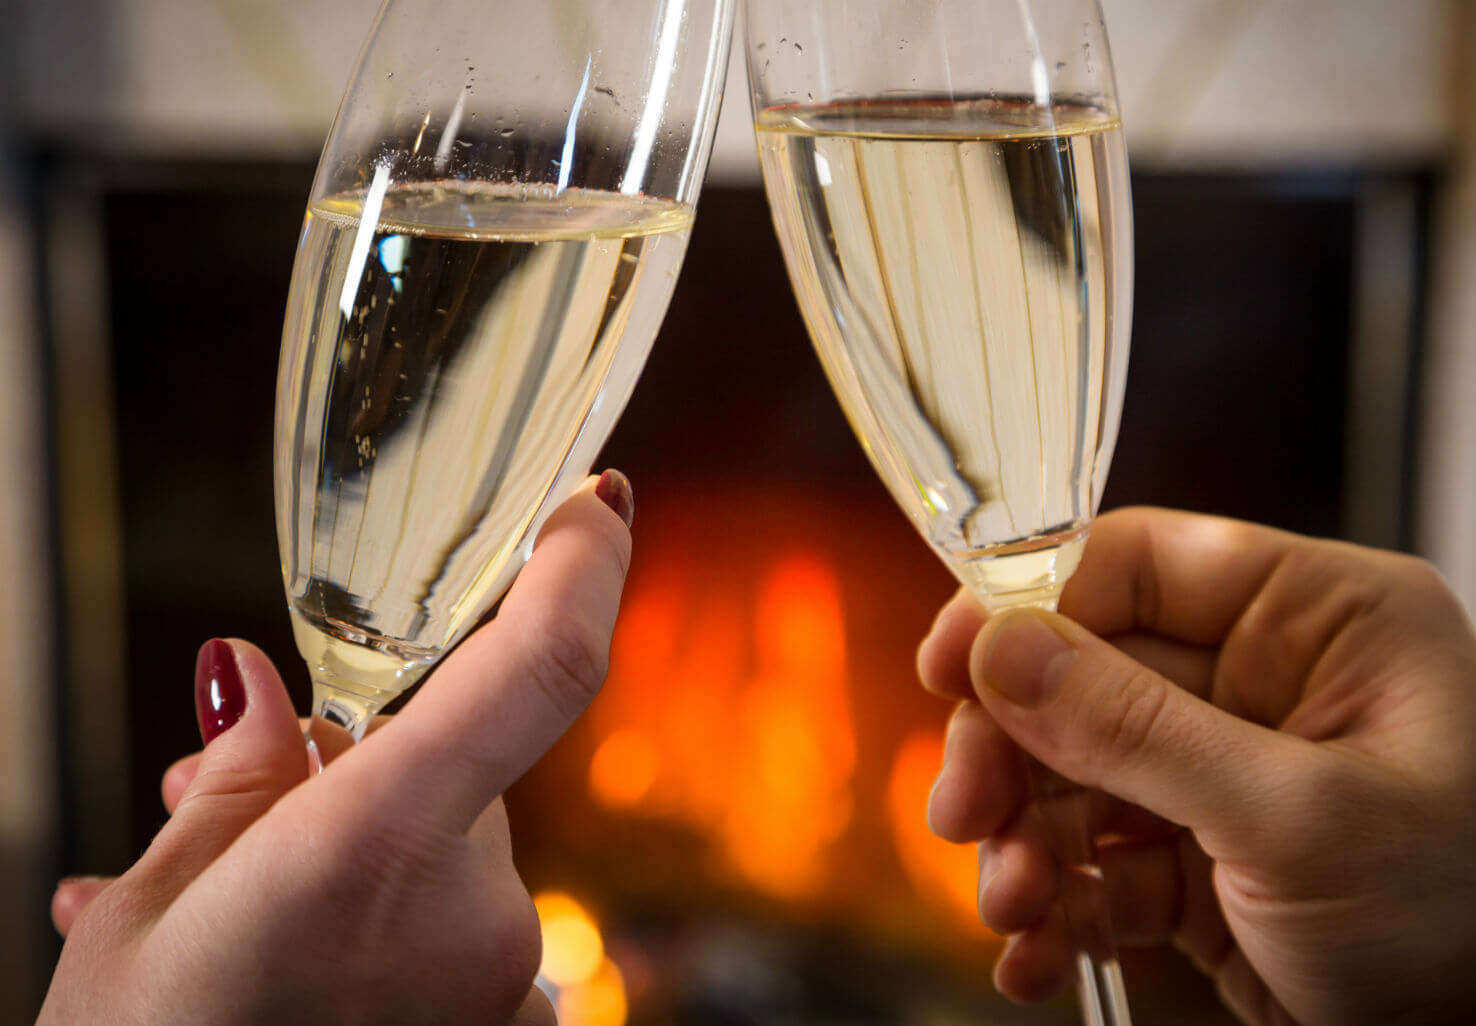 Two people toasting with champagne glasses in front of fireplace